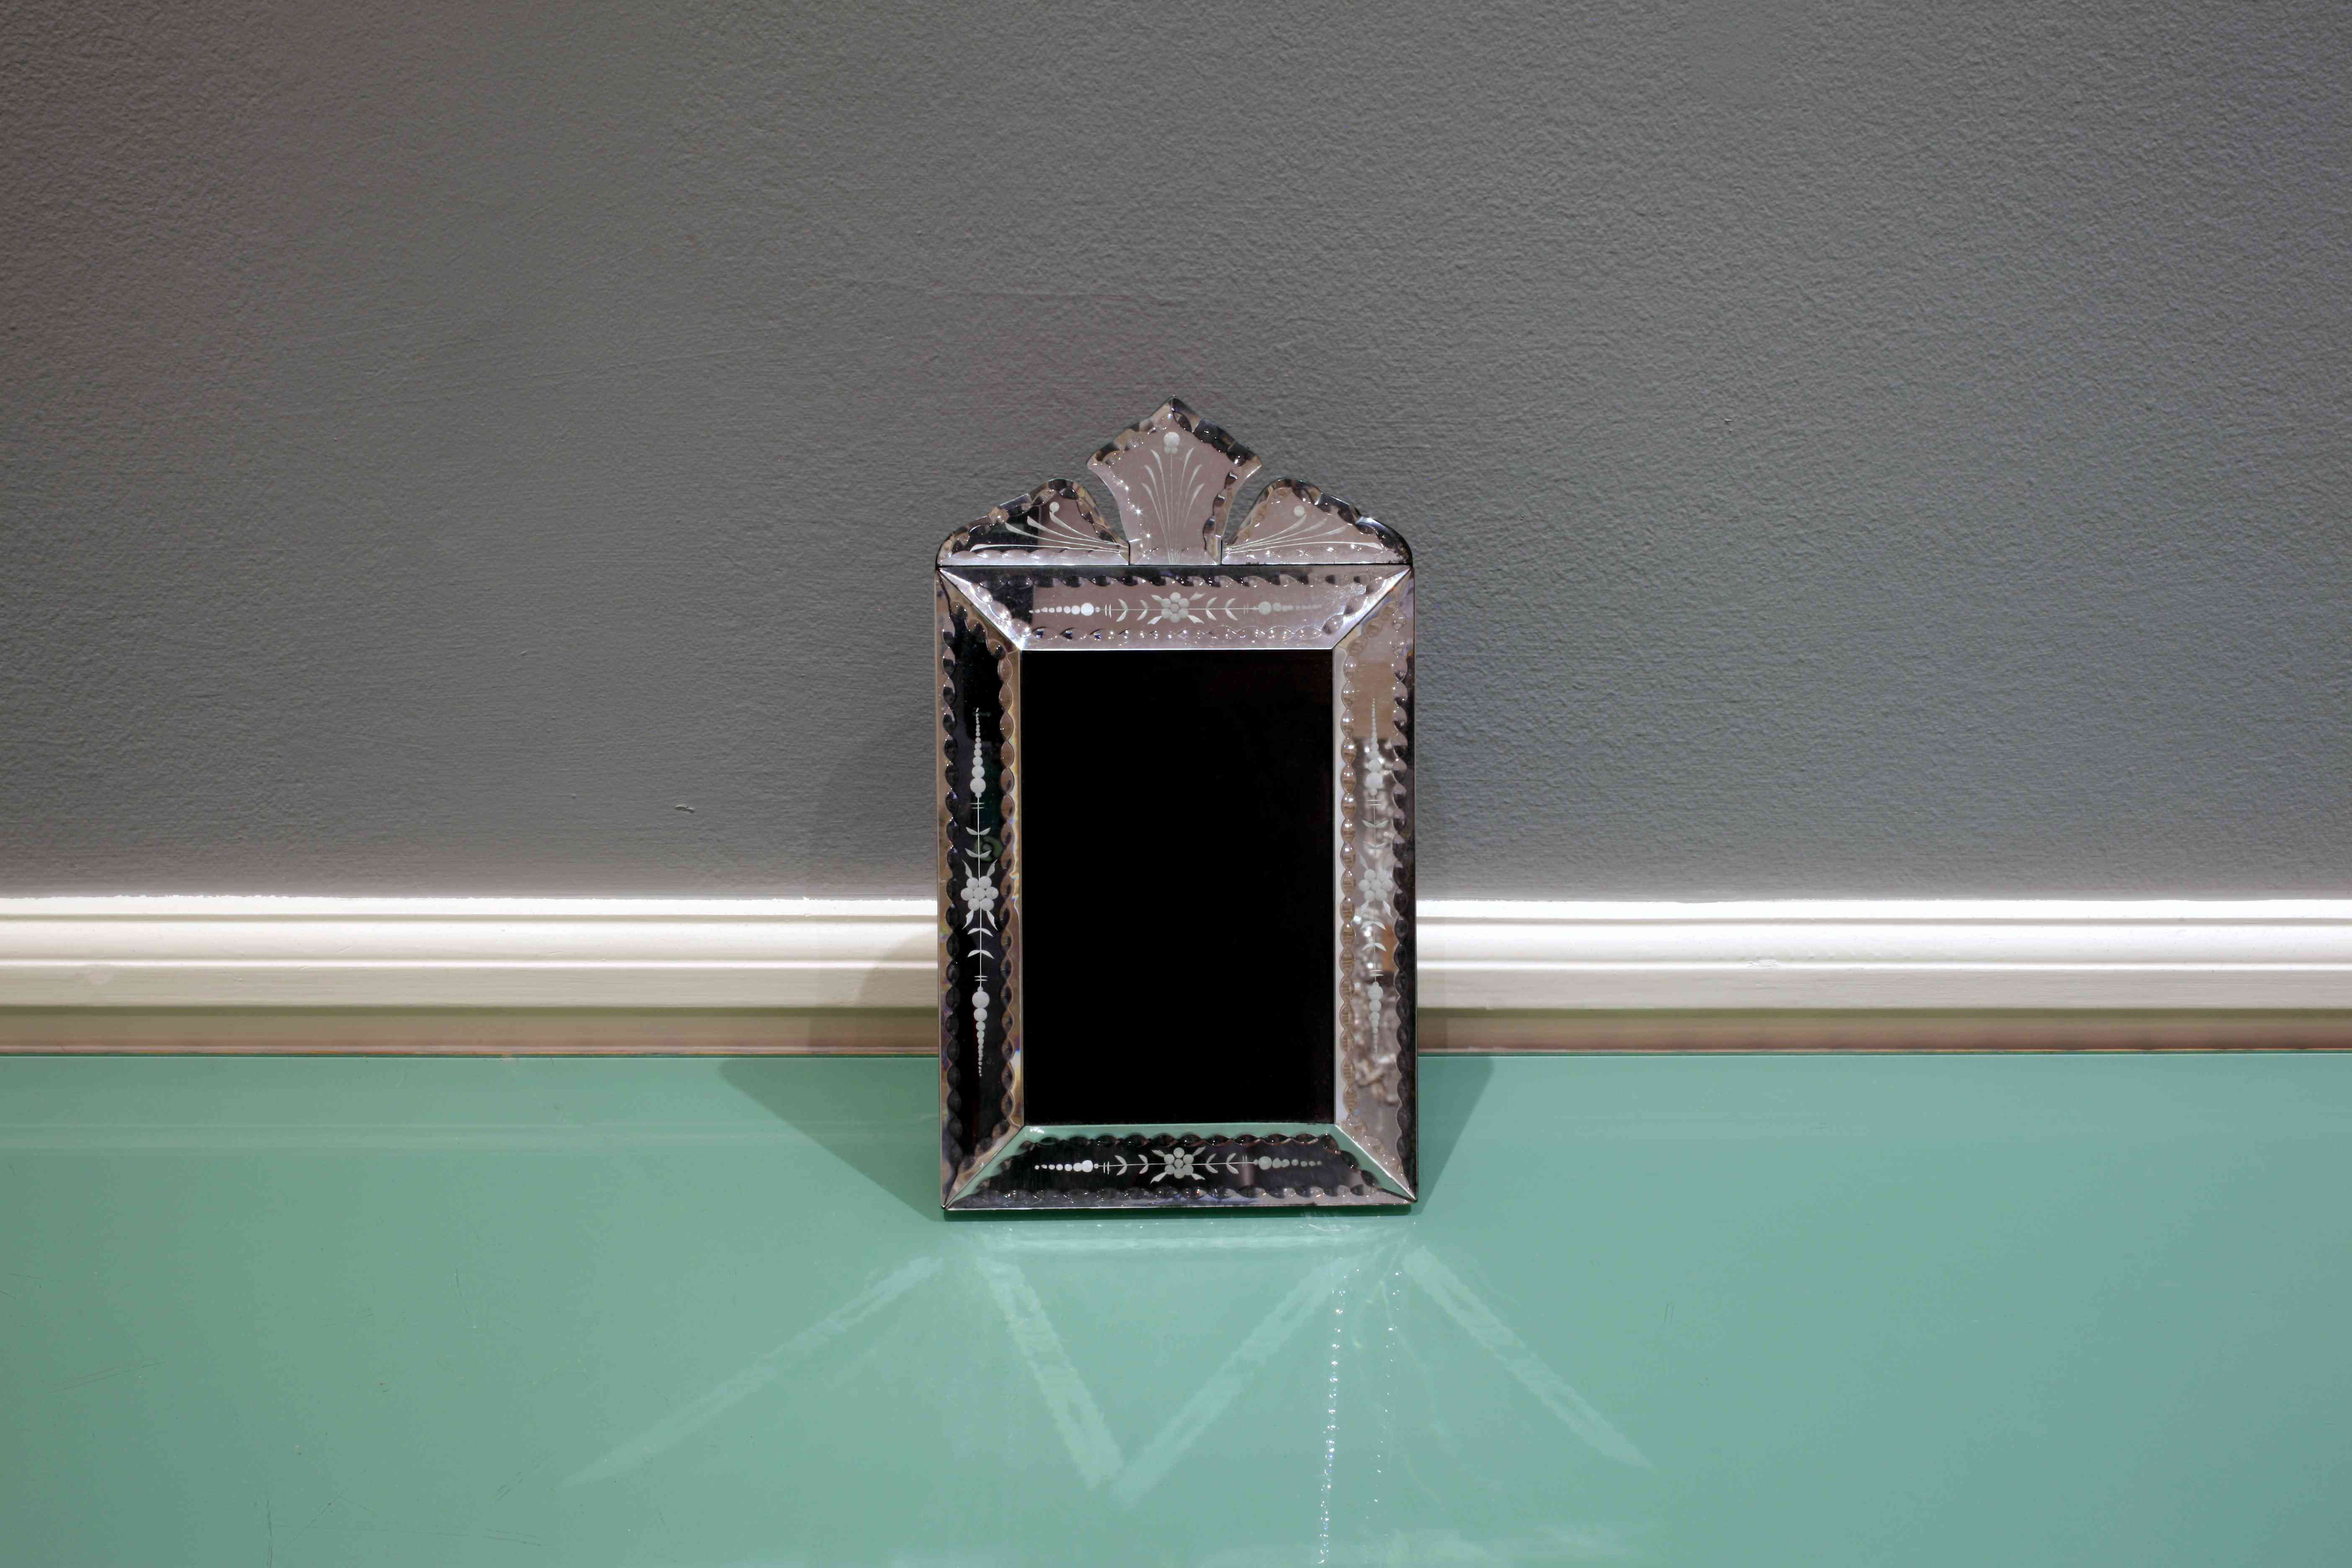 Handcrafted Venetian mirror on a green glass table inside a room